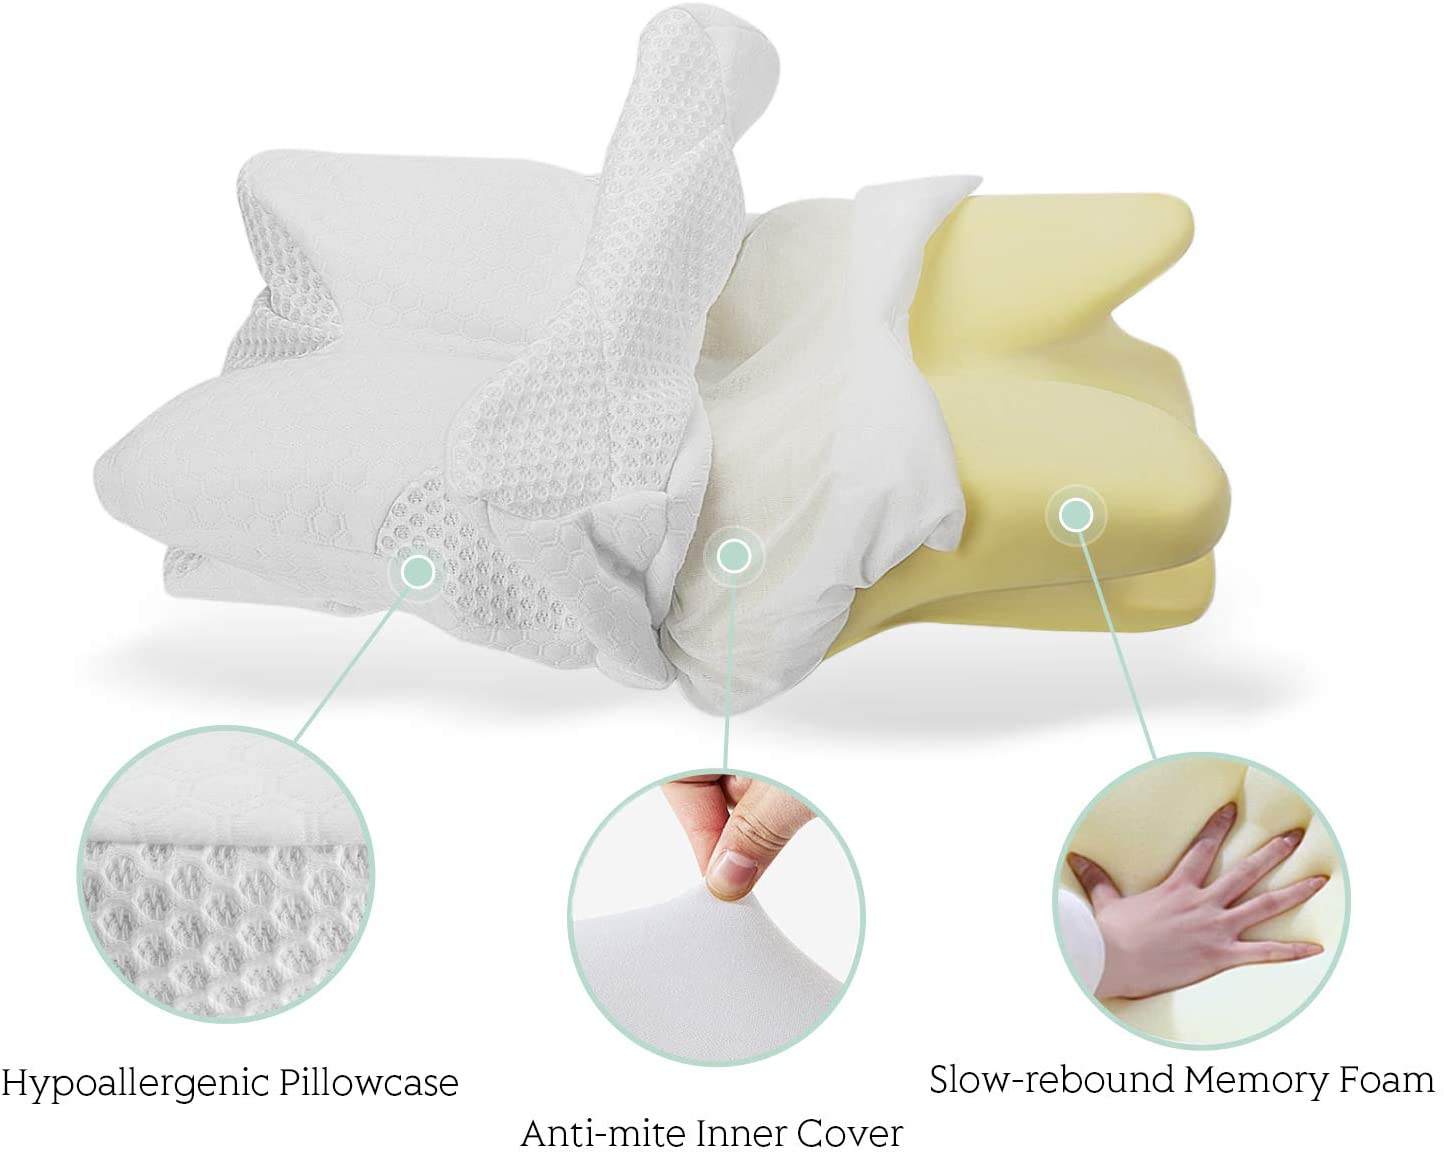 coisum back sleeper cervical pillow memory foam pillow for neck and shoulder pain relief orthopedic contour ergonomic pillow for neck support with